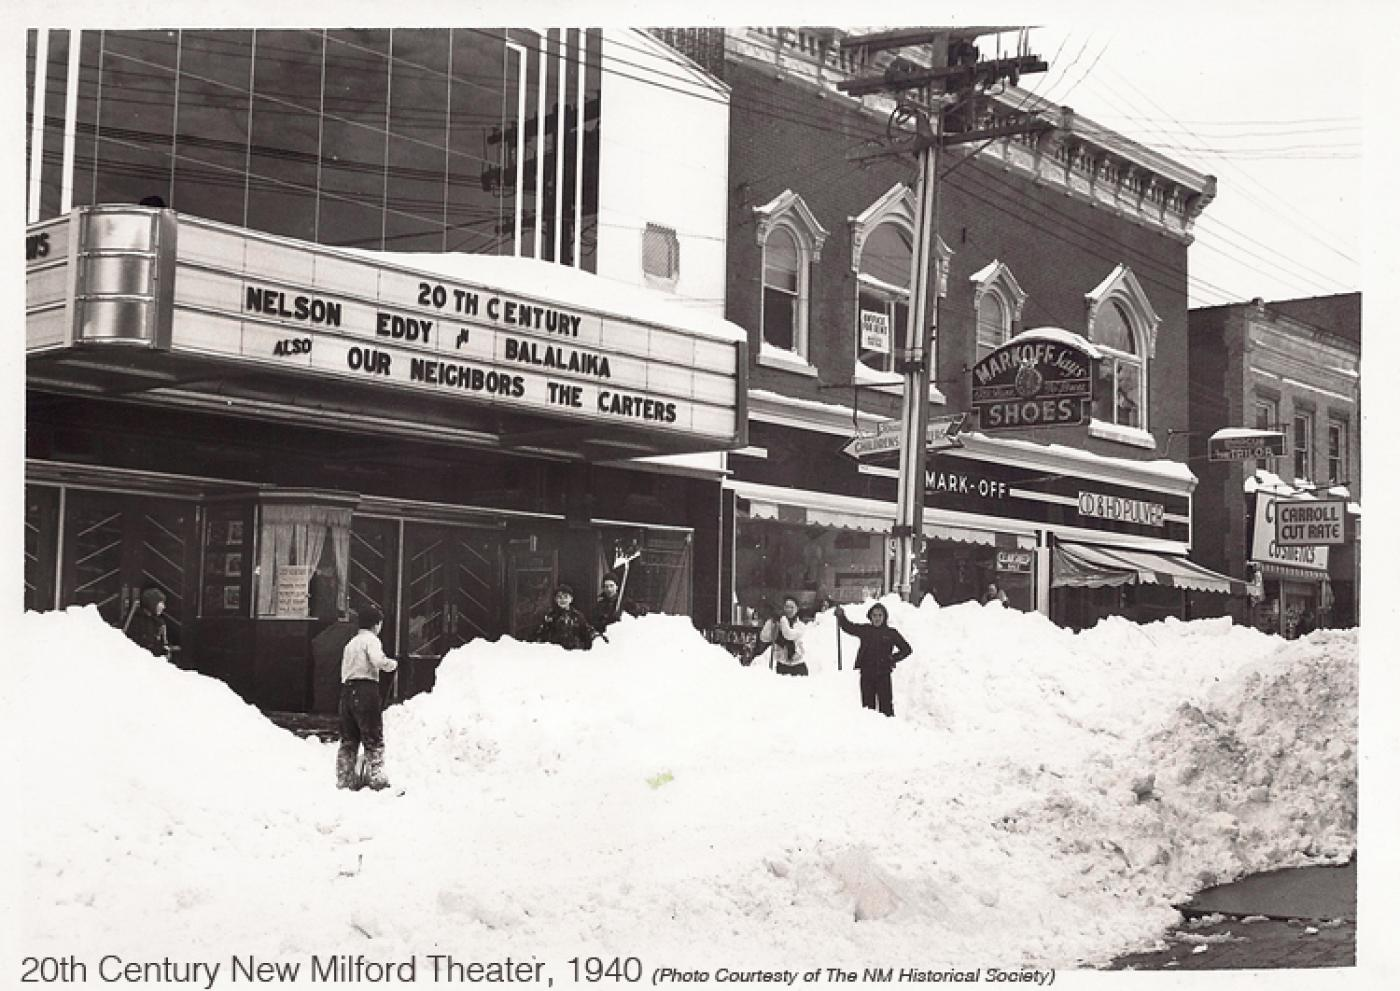 <h2>Bank Street Theater Turns 100 Anniversary Exhibit</h2>